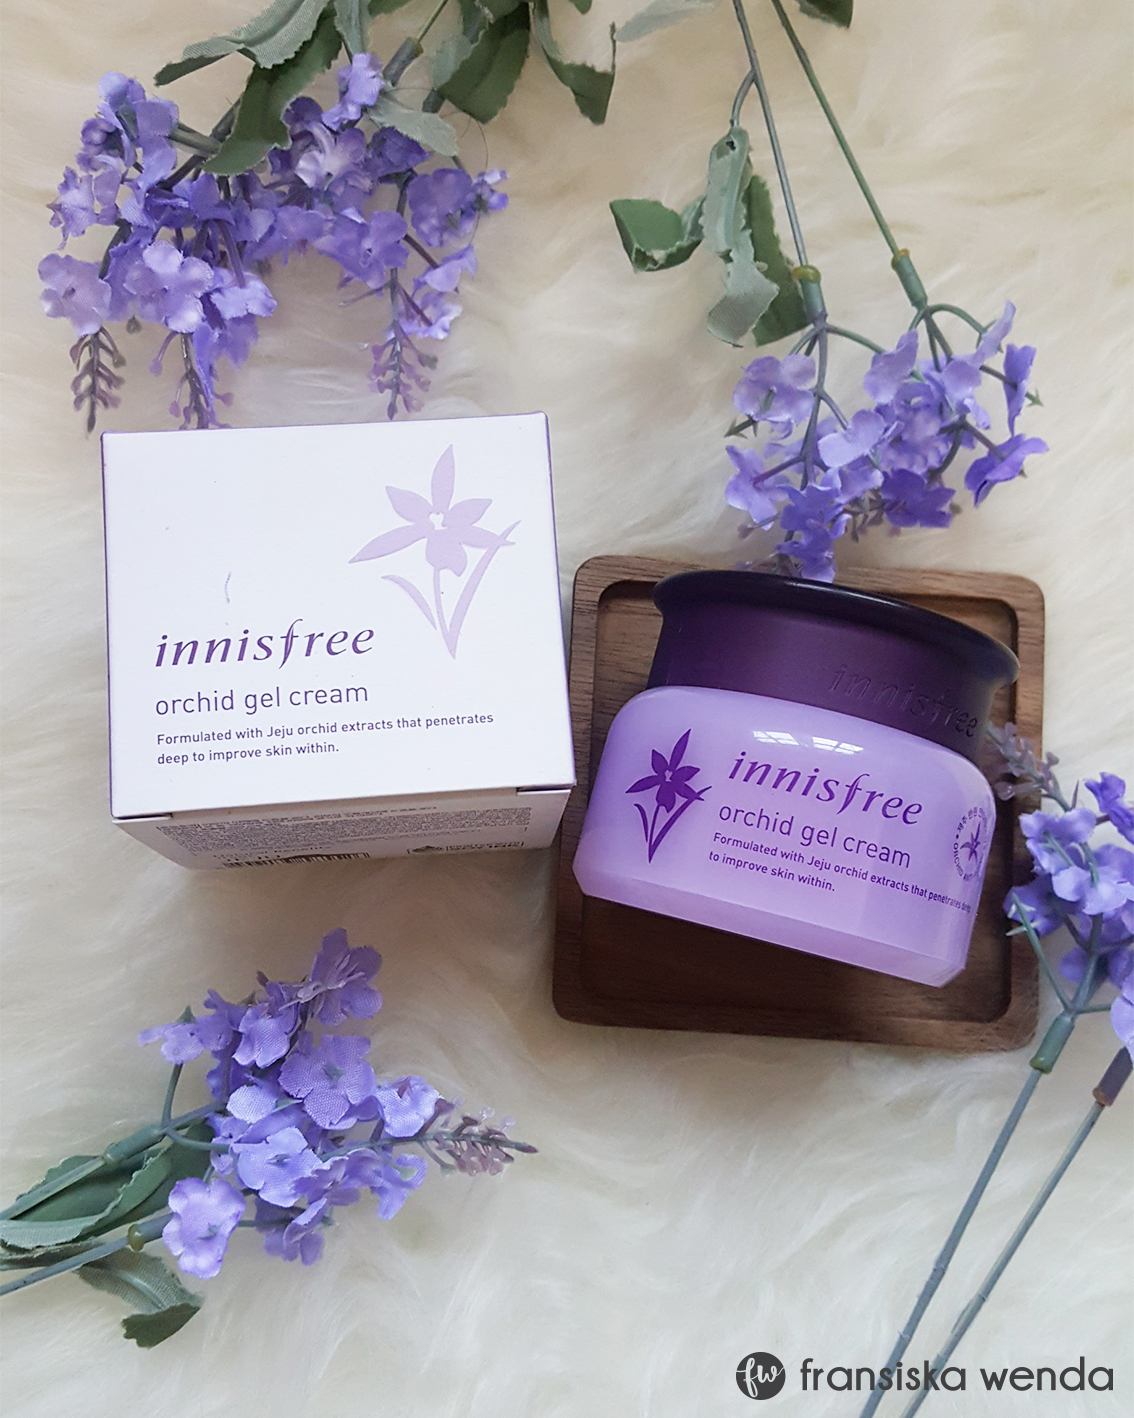 Innisfree Orchid Gel Cream Review Fransiska Wenda Blog Sleeping Pack 80ml With Active Composition From Jeju As Anti Oxidant To Help Moisturize And Gentle For Combination Oily Skin Postpone Wrinkle Remain